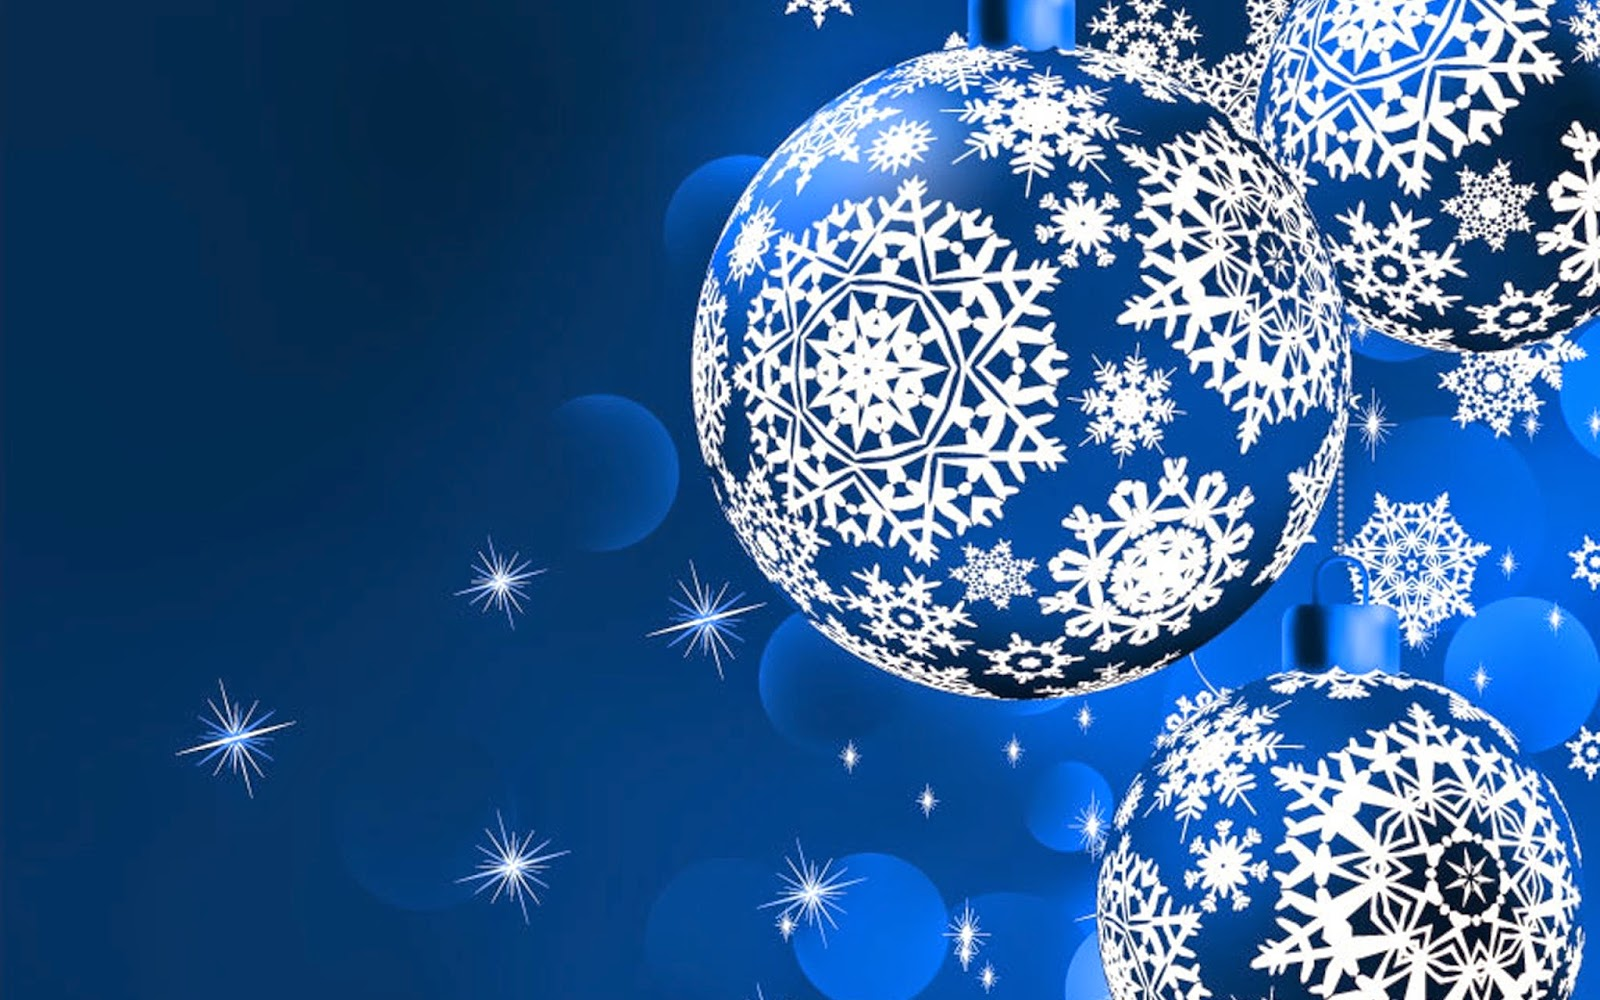 Christmas bauble abstract vector graphics image Blue background silver designs wallpaper